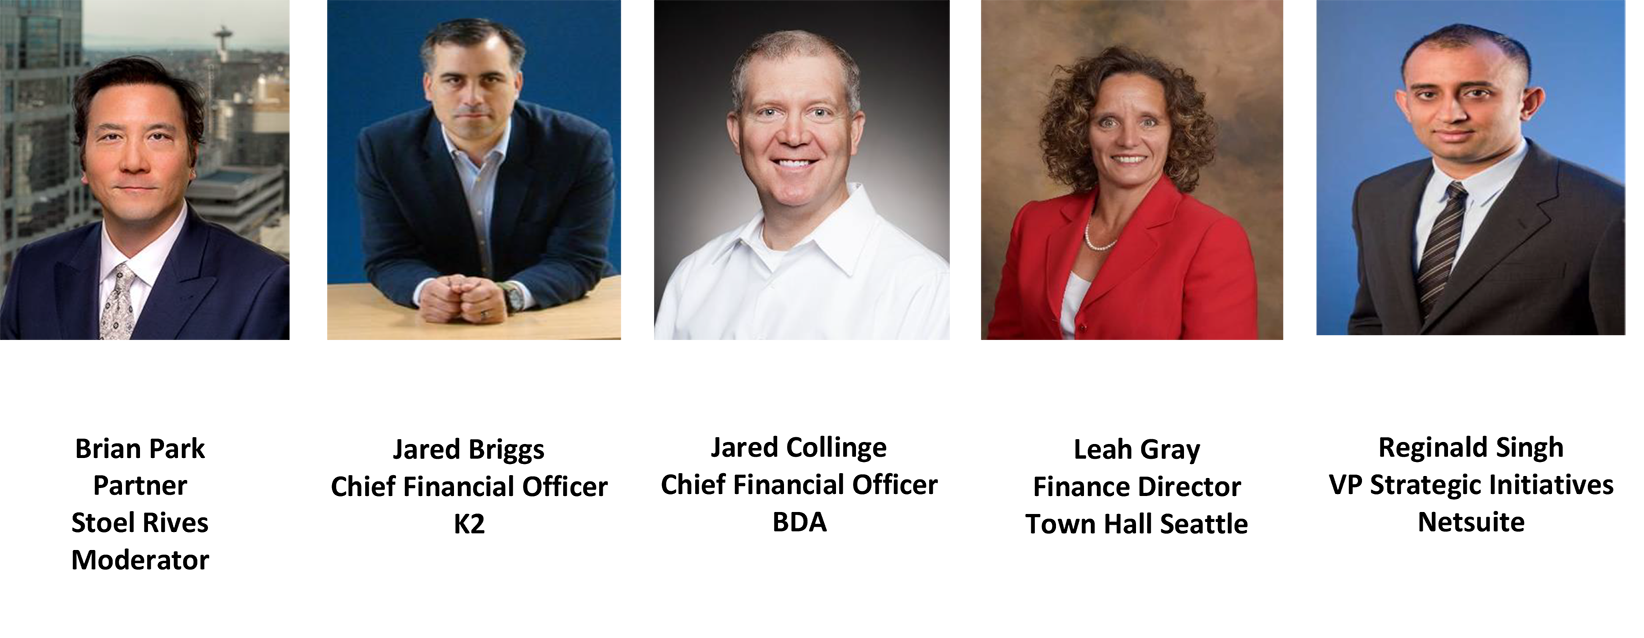 CFO Leadership Council Speakers for 09/20/2018